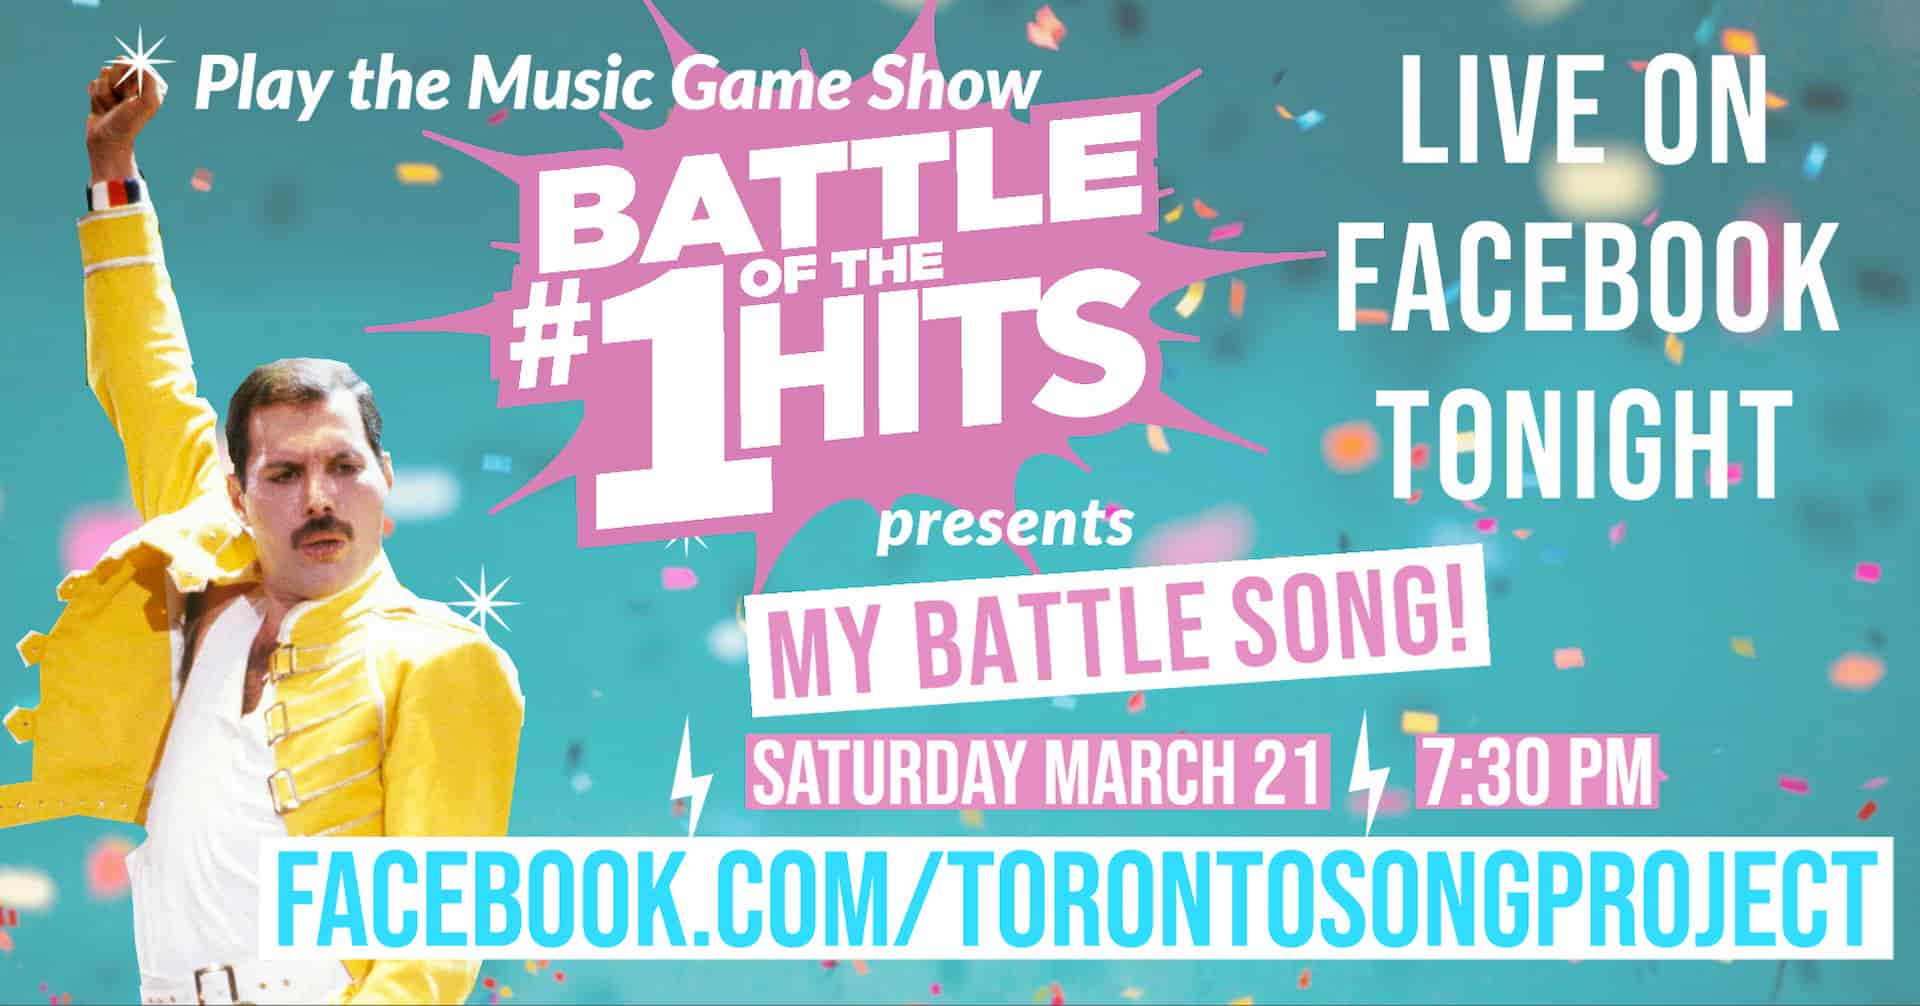 Banner ad for Battle of the #1 Hits on Facebook Live